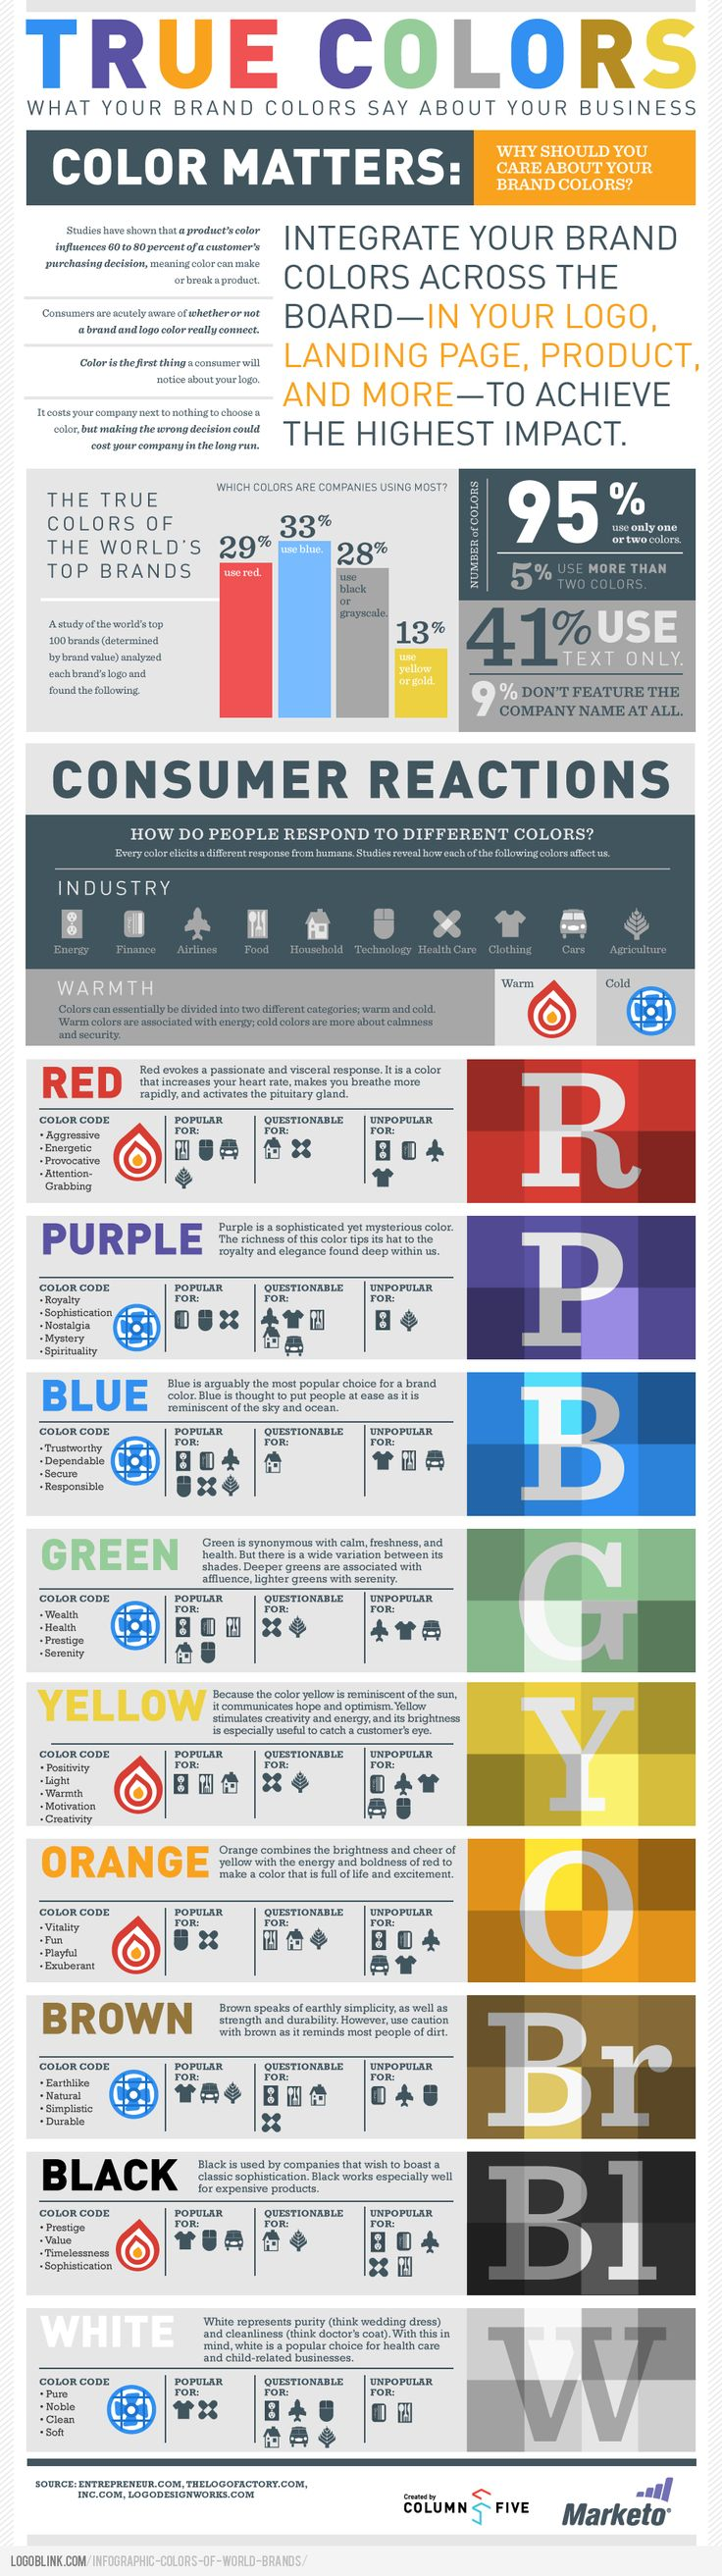 colors-of-world-brands